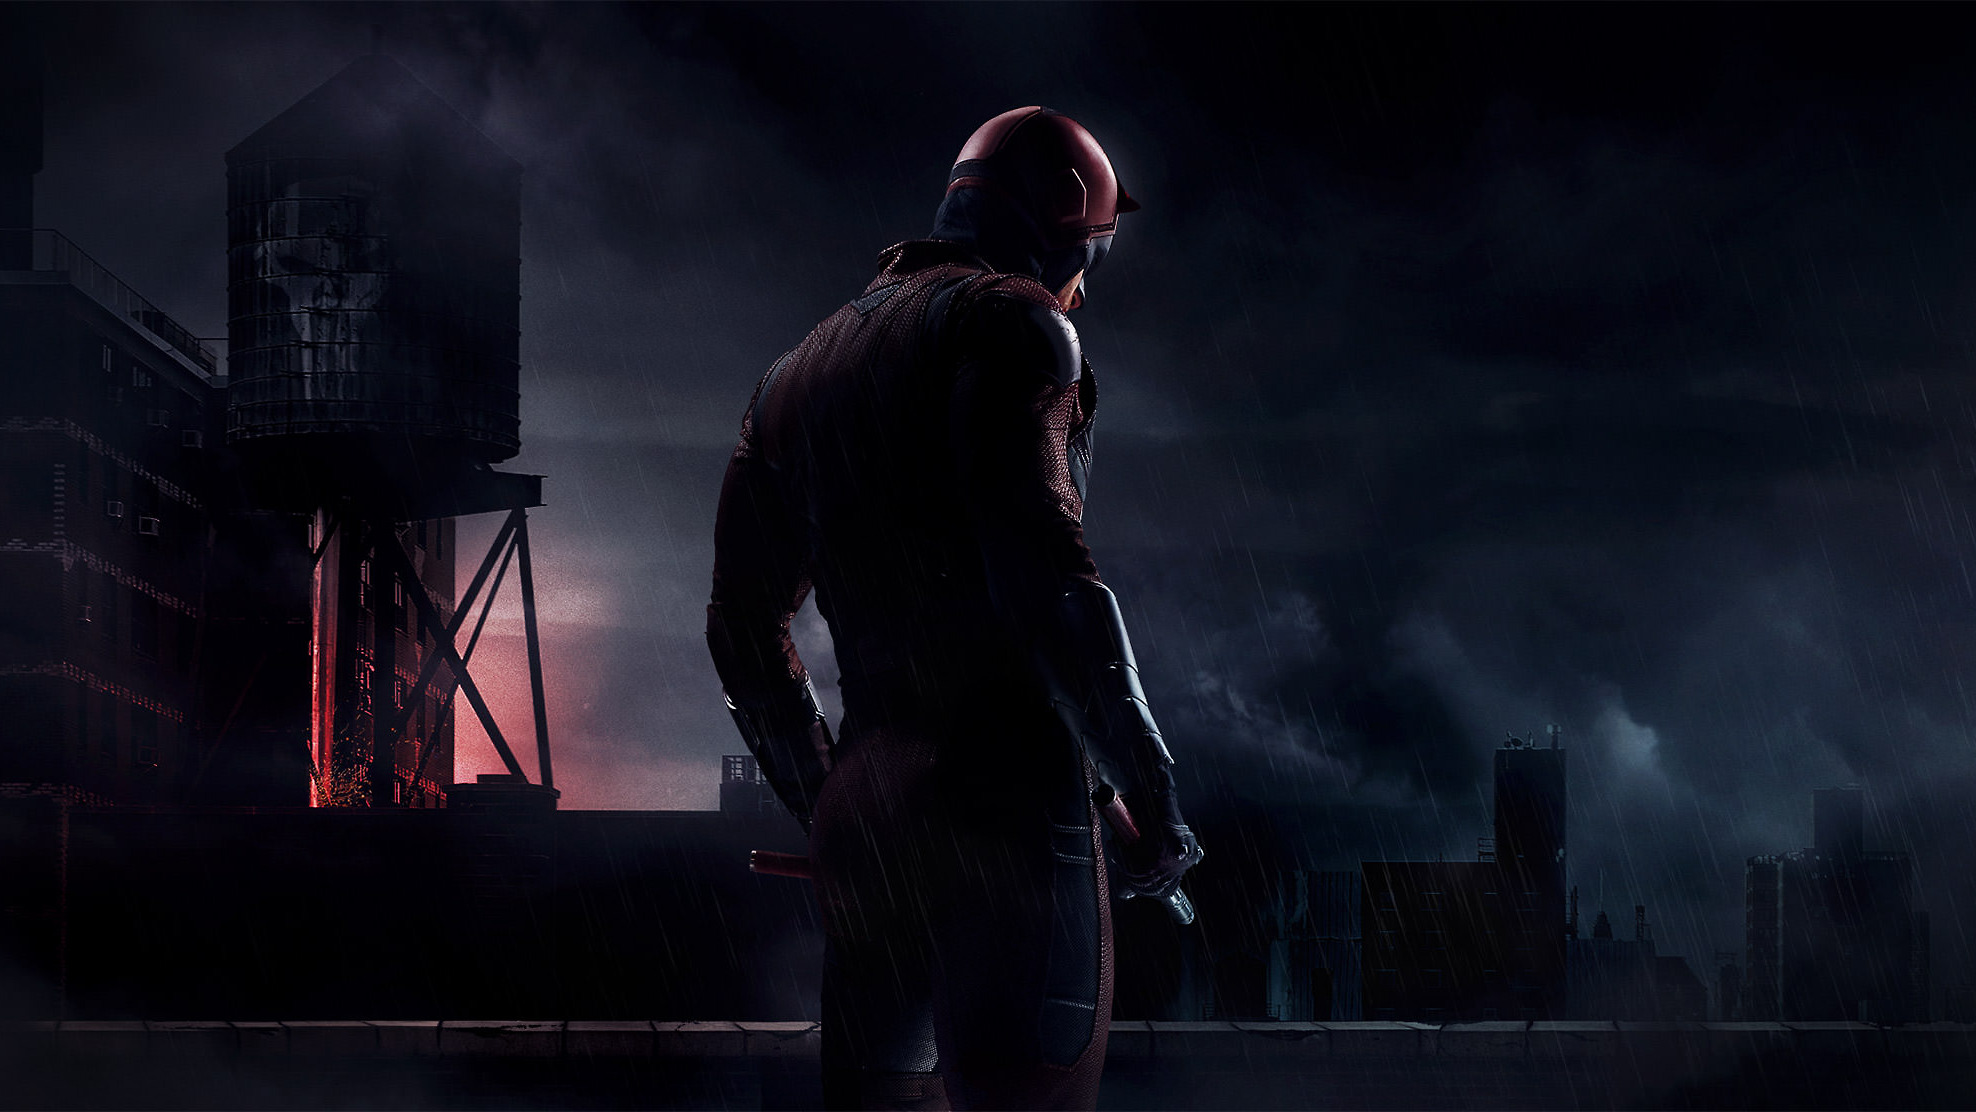 Punishment Finds Daredevil In New Season 2 Motion Posters